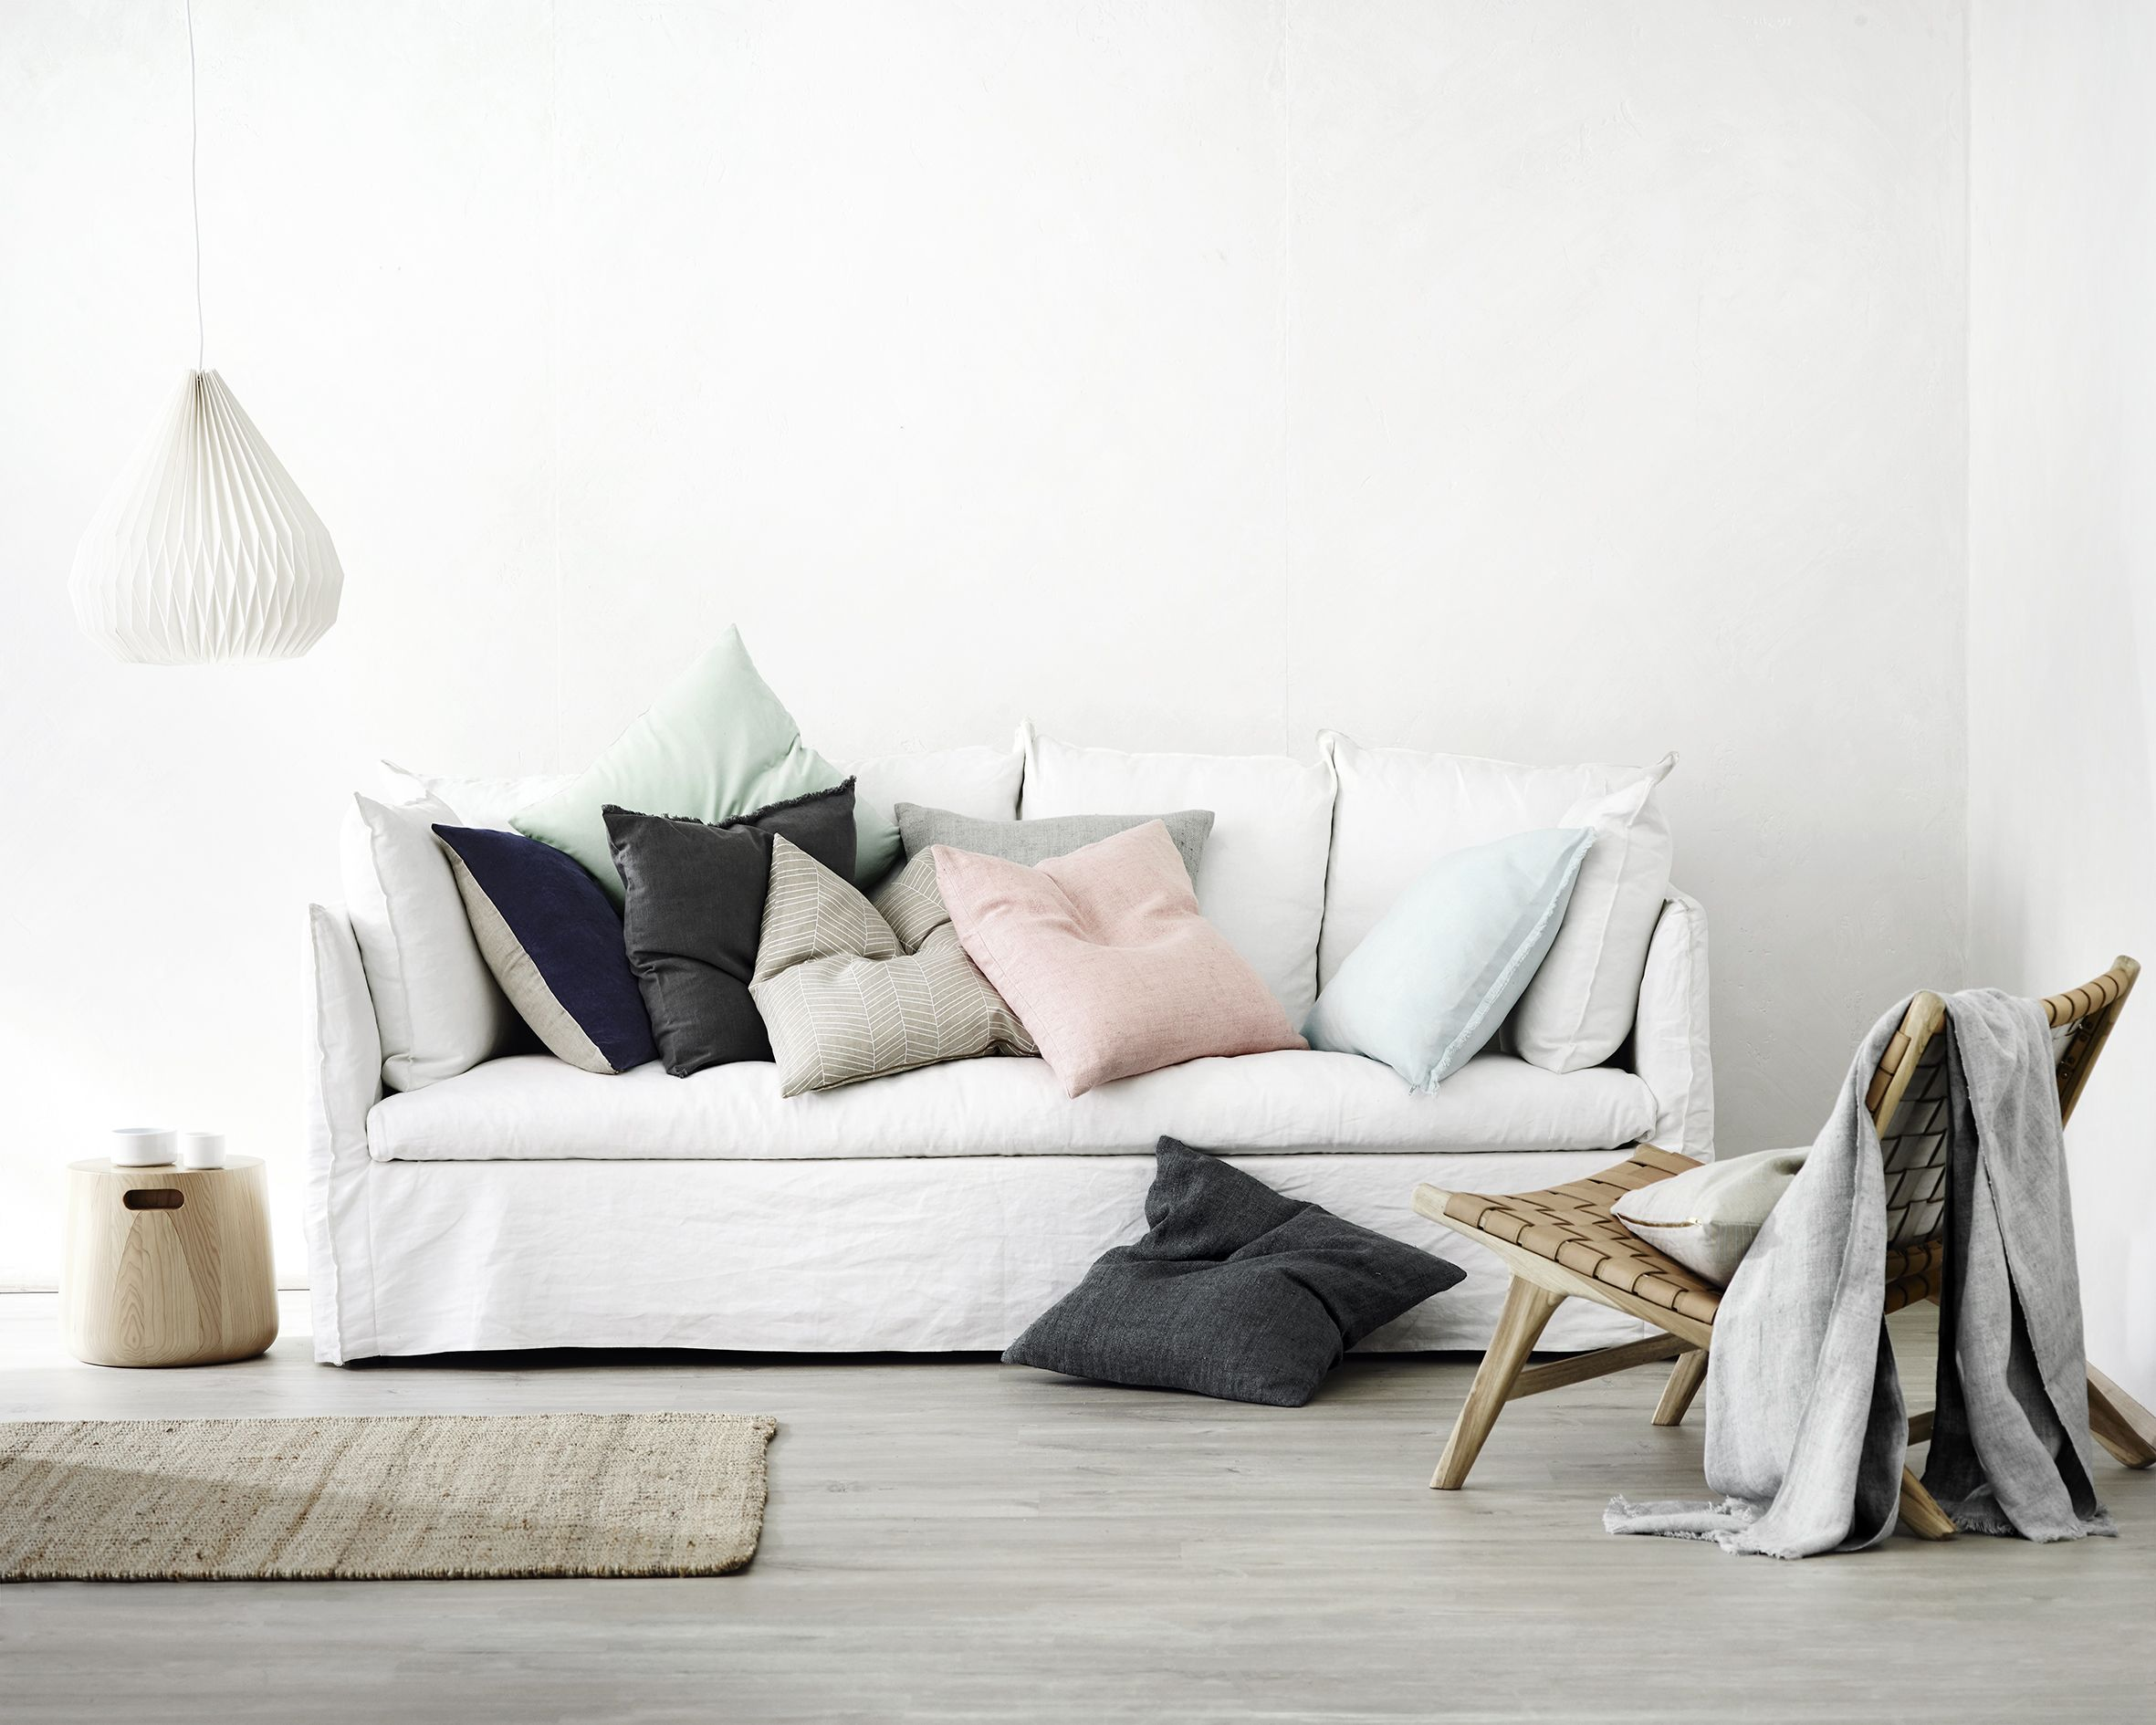 Dusty and earthy cushions and throws AURA Home SS16 17 collection